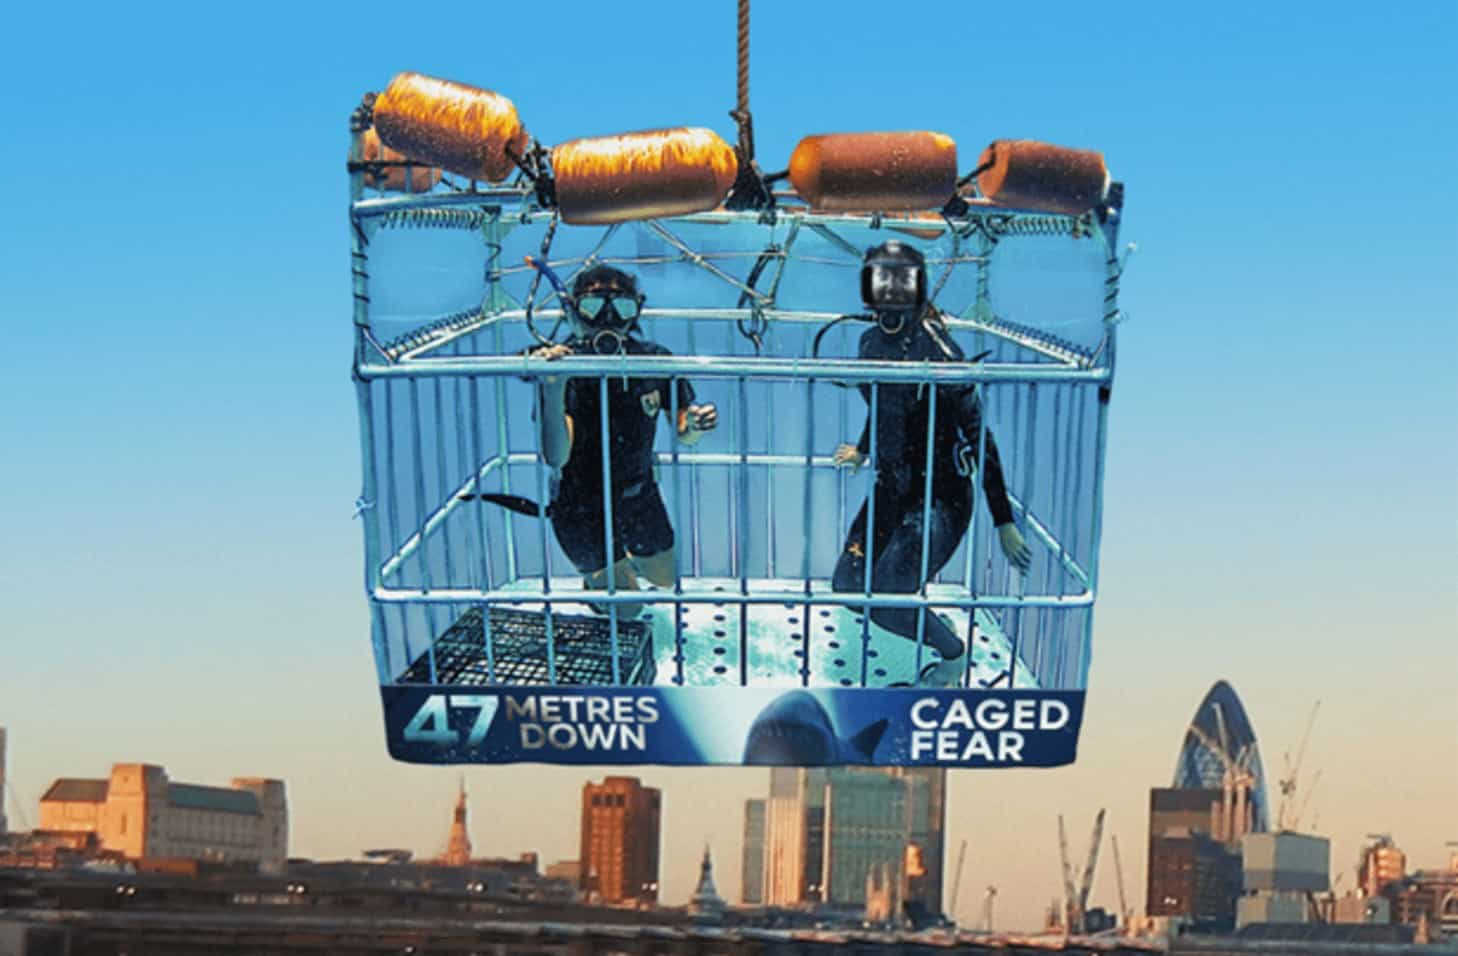 Caged Fear Publicity Stunt of the Week